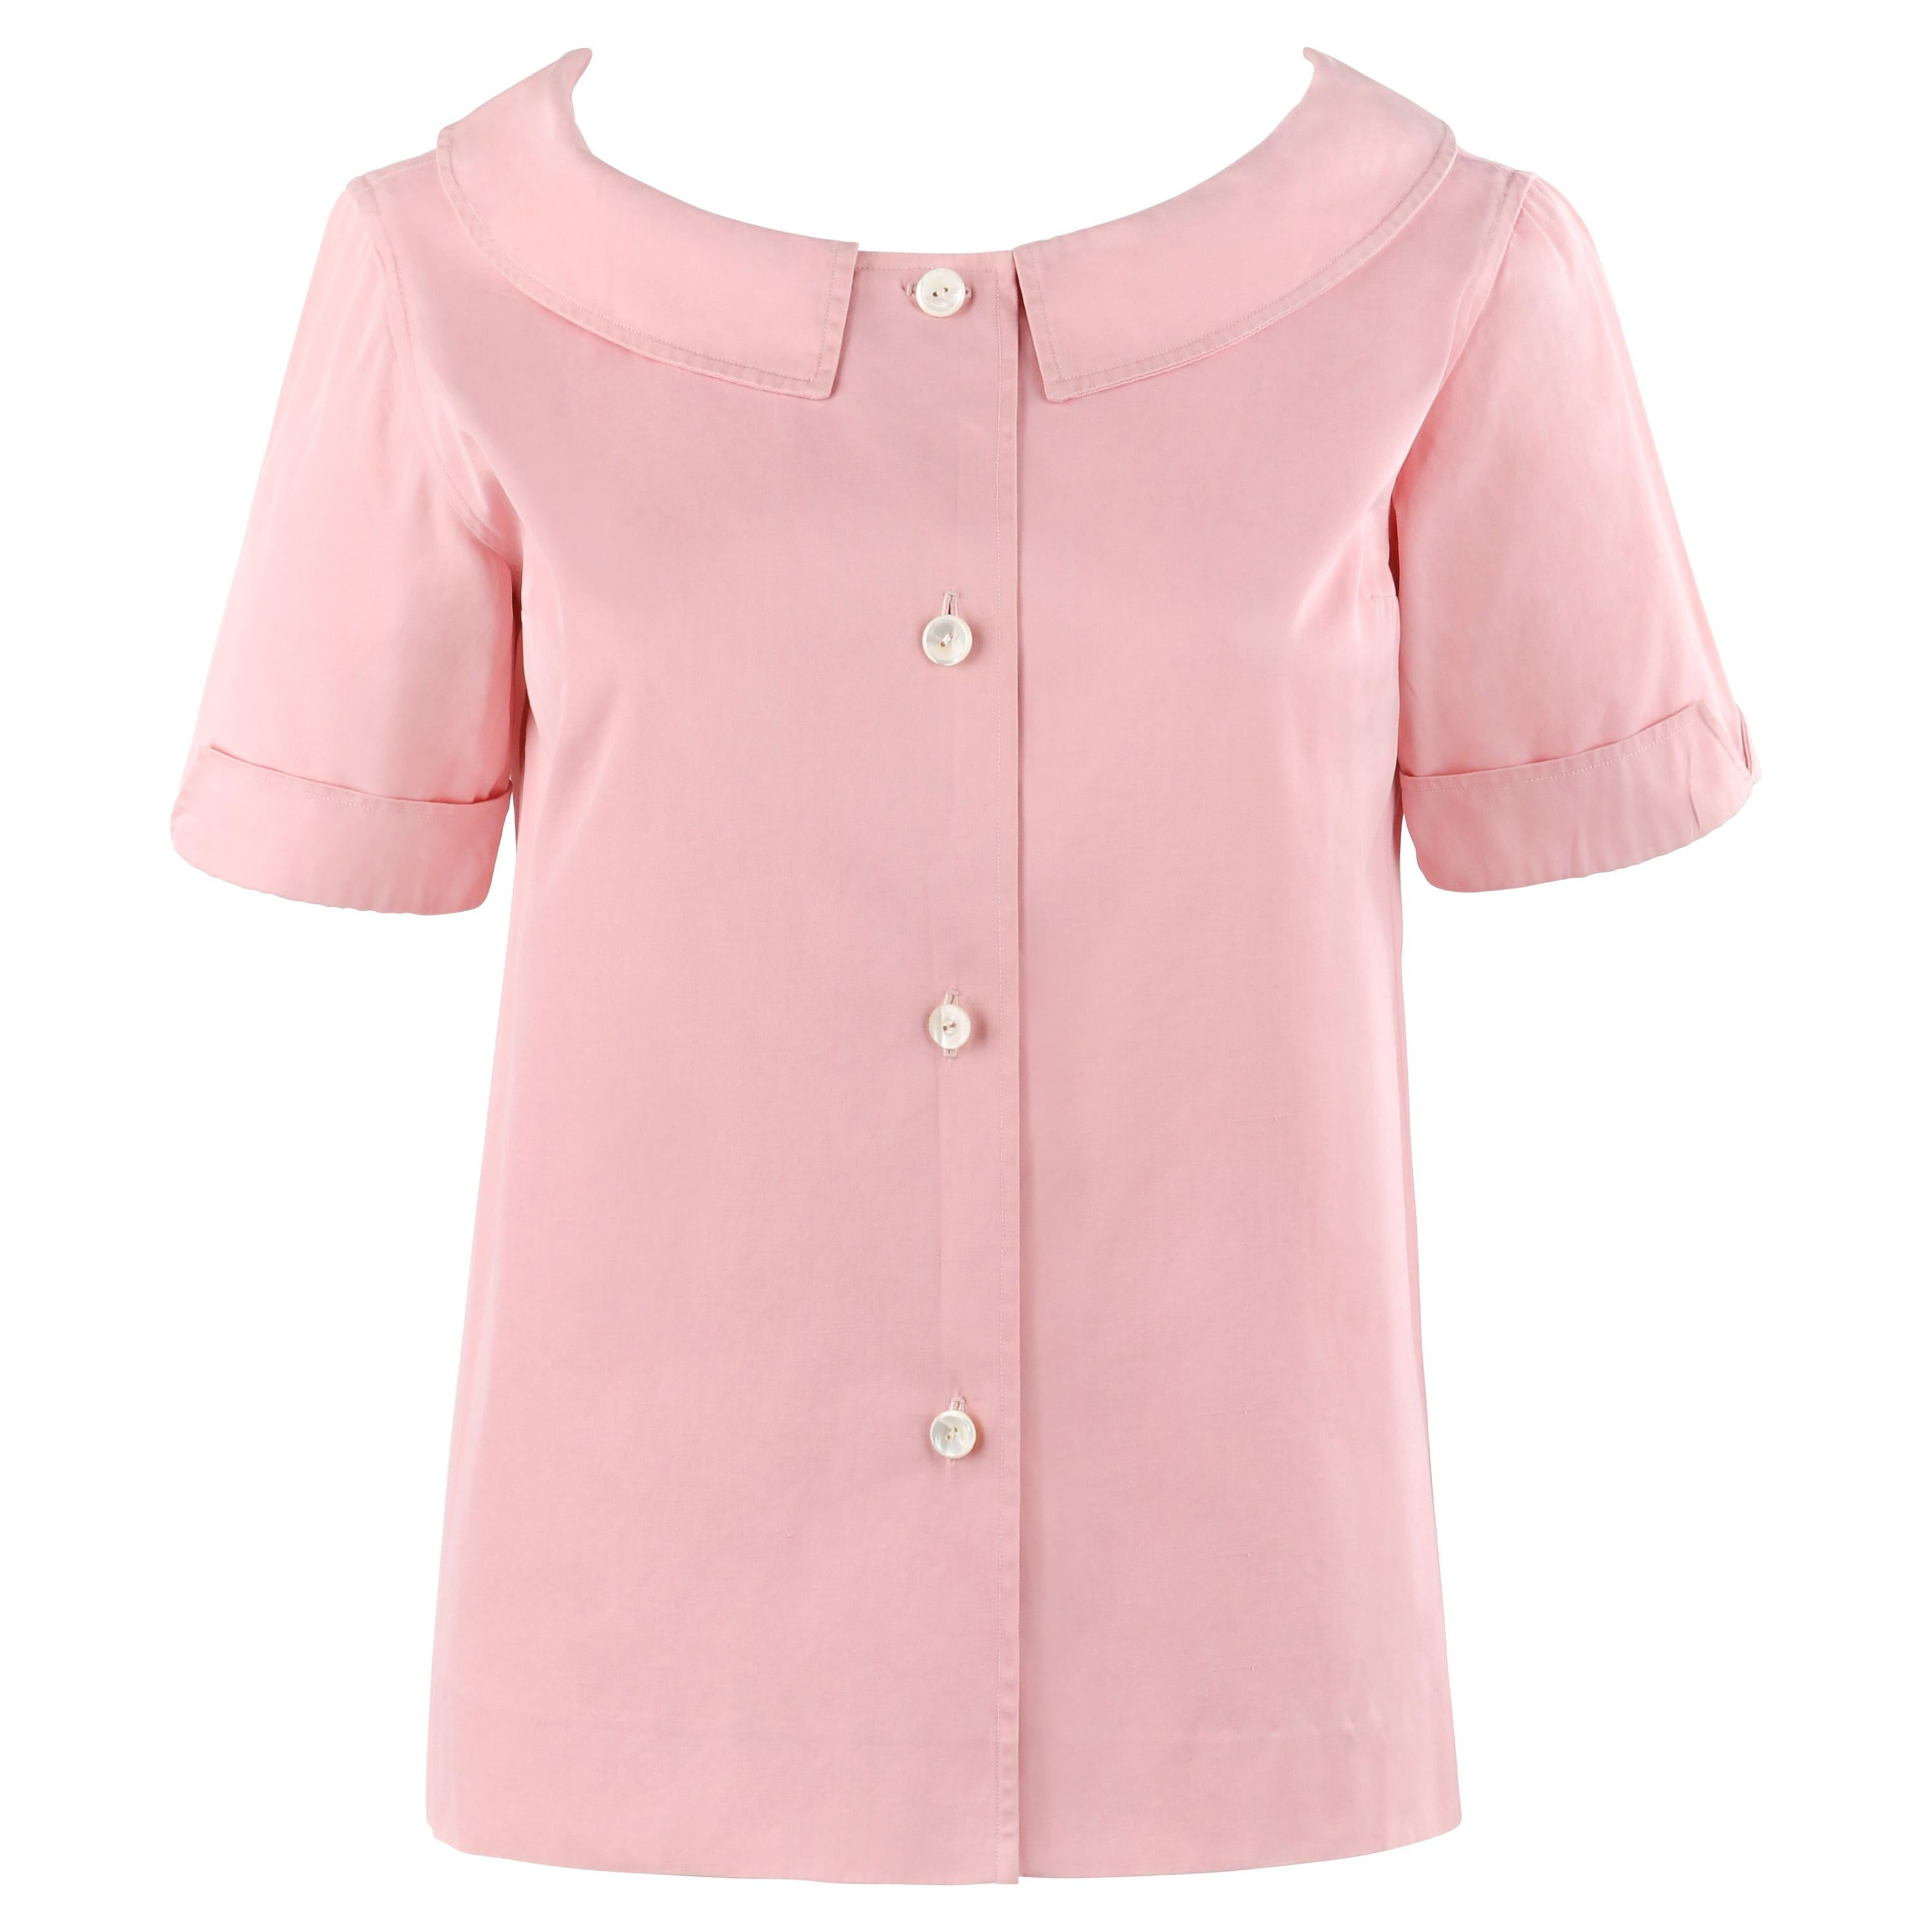 EMILIO PUCCI c.1950's Pink Button Up Short Sleeve Blouse Top - Early Design